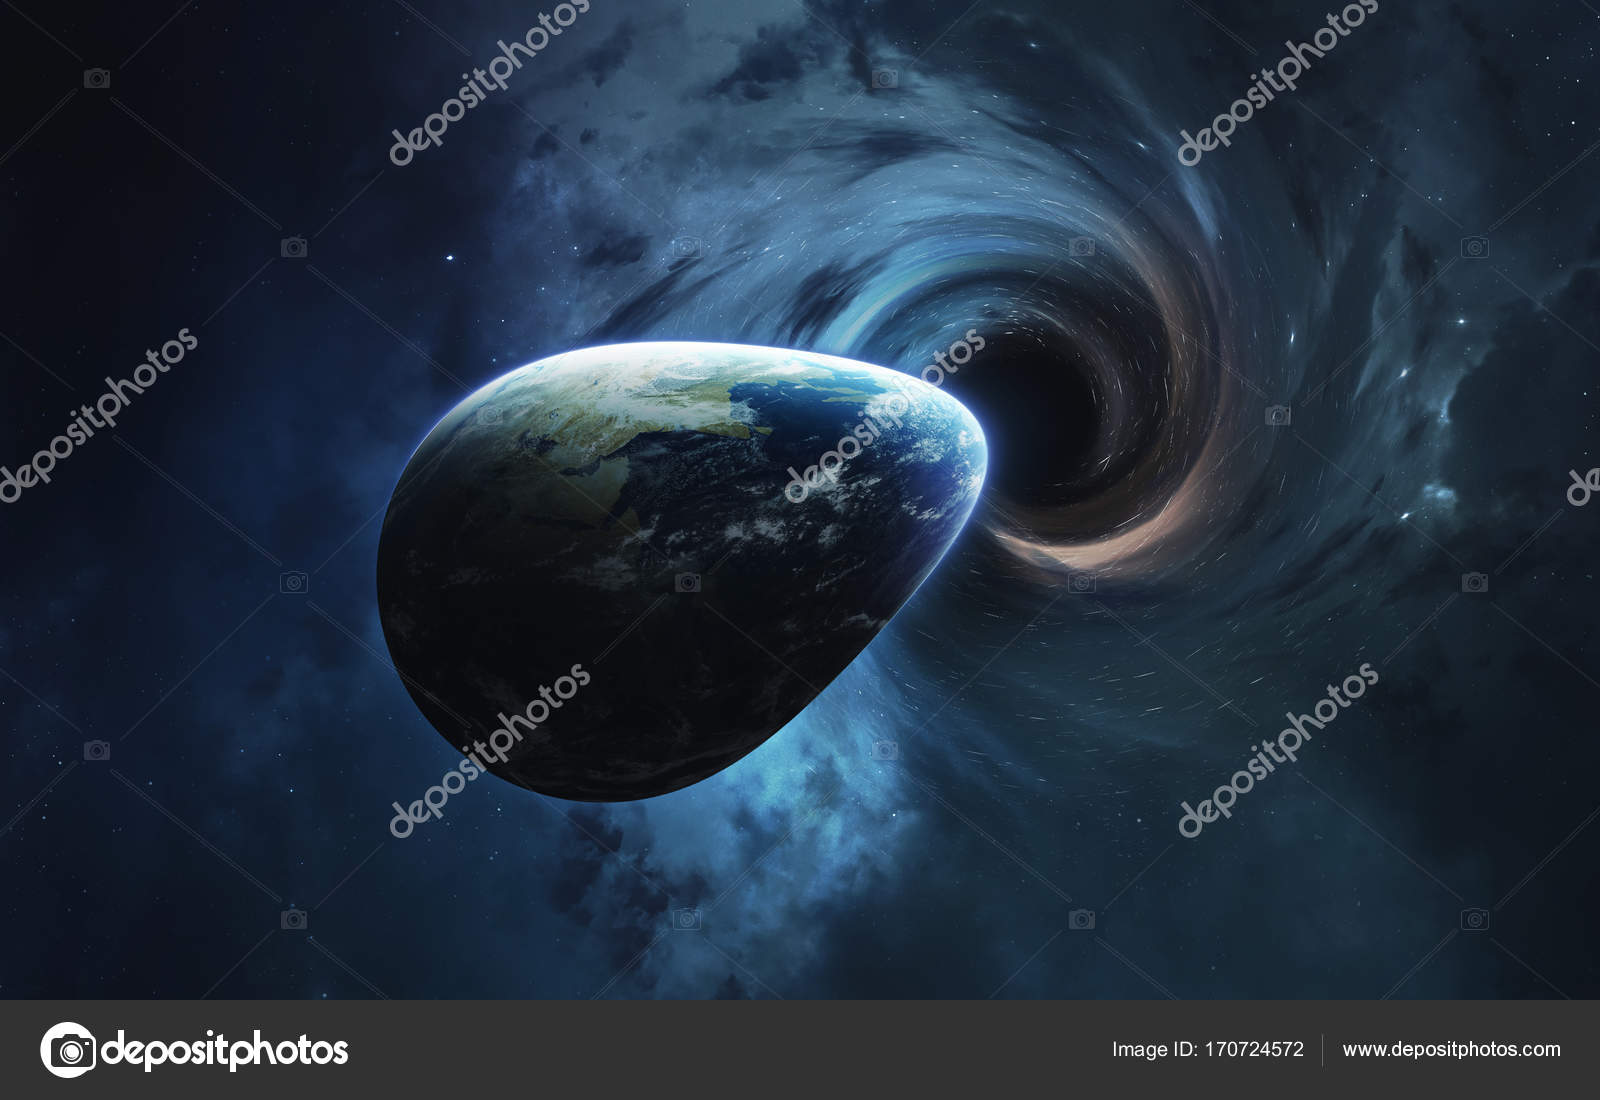 black hole and earth. abstract space wallpaper. universe filled with